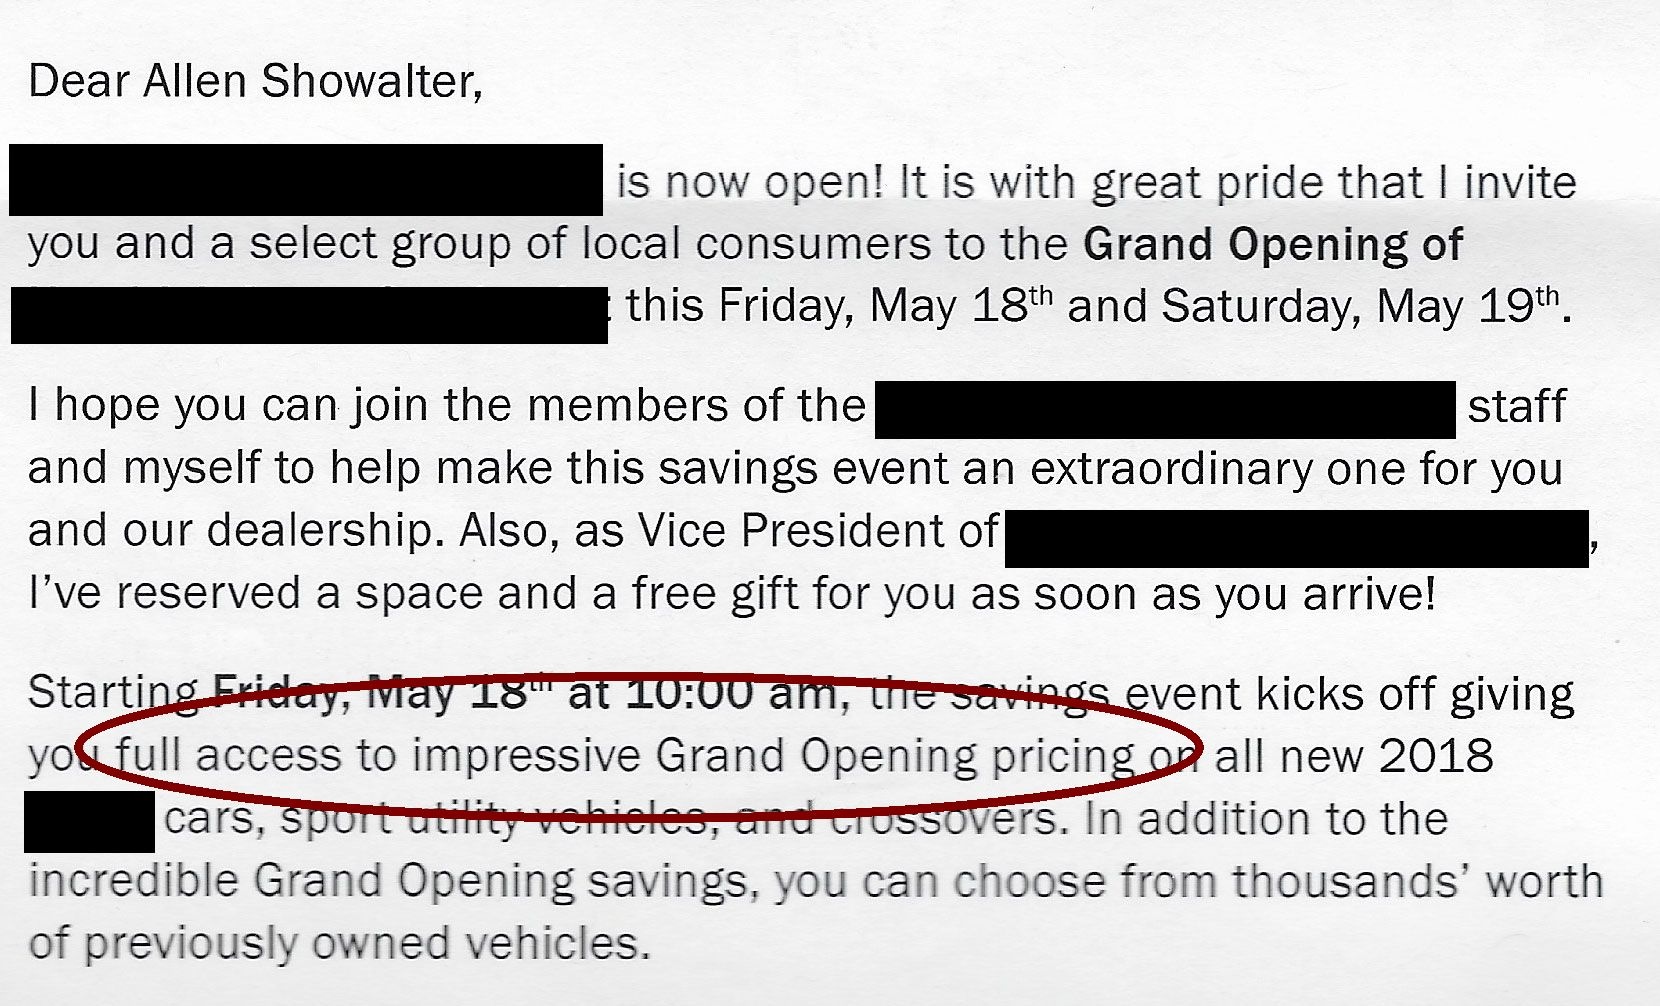 Full Access To Impressive Grand Opening Pricing Most Impressive